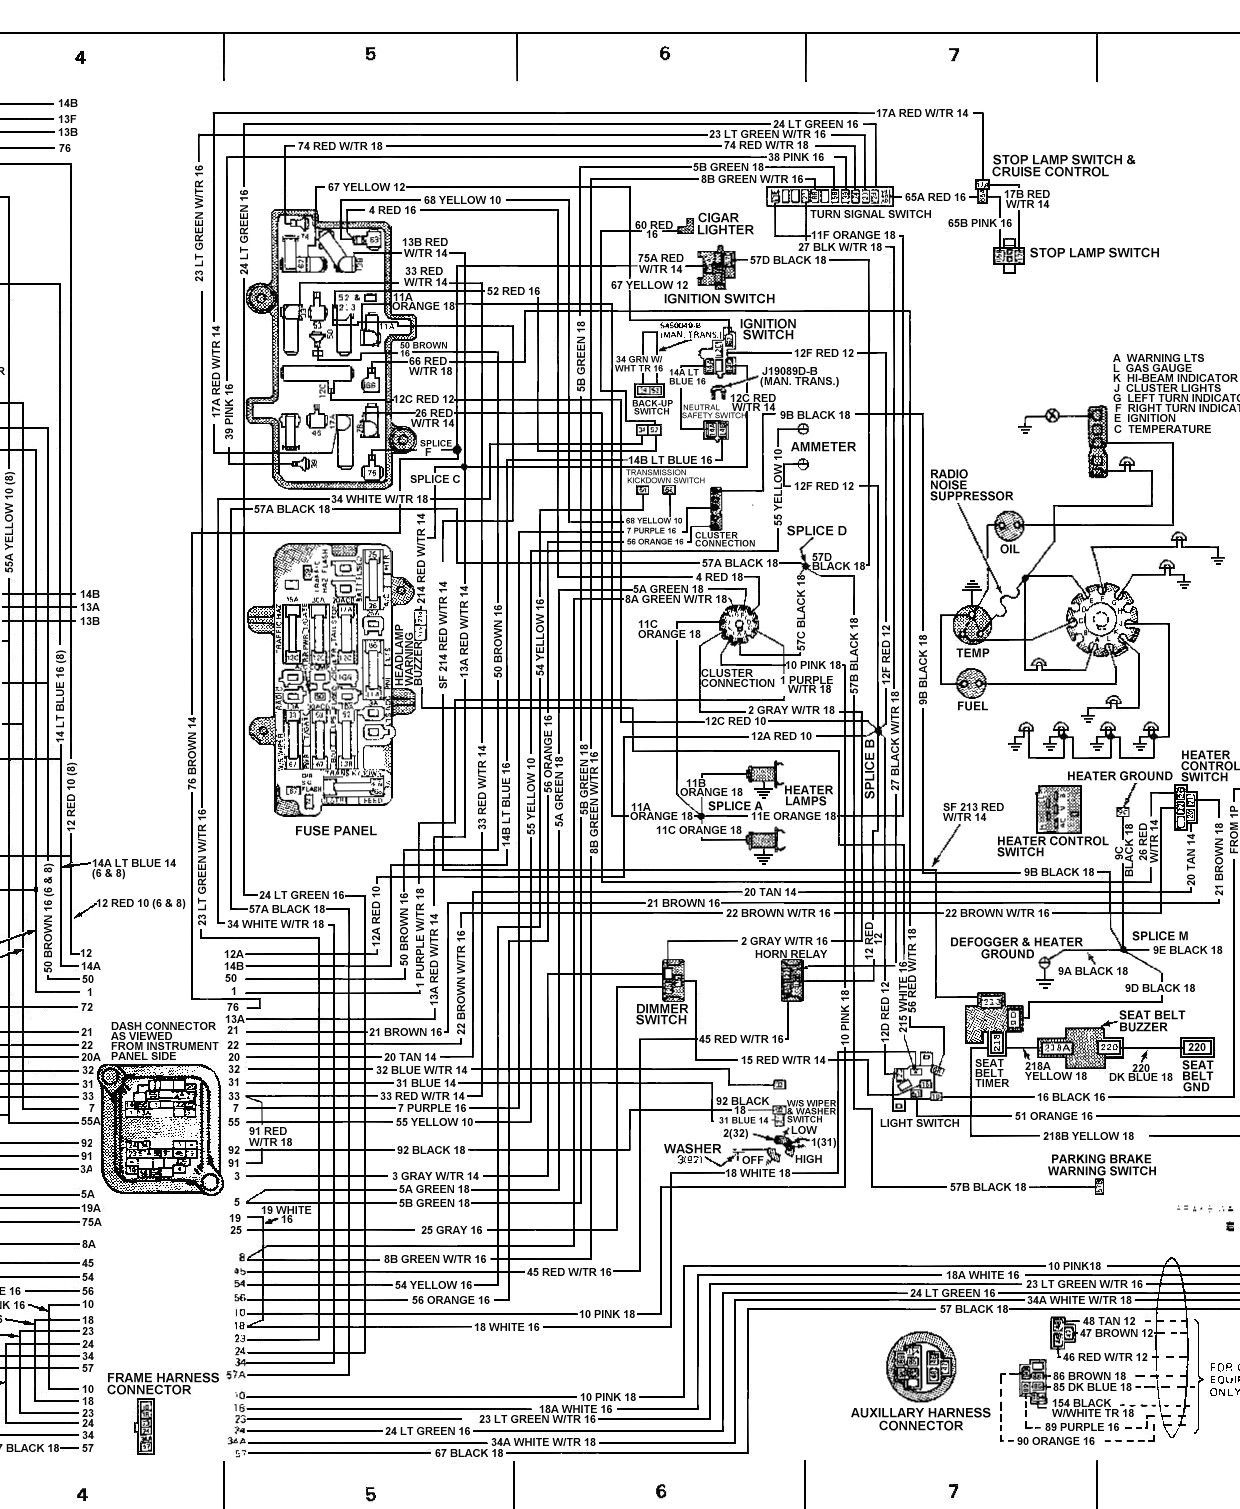 transmission for 2004 f350 wiring schematic 41d57 nissan pulsar wiring harness diagram wiring resources  41d57 nissan pulsar wiring harness